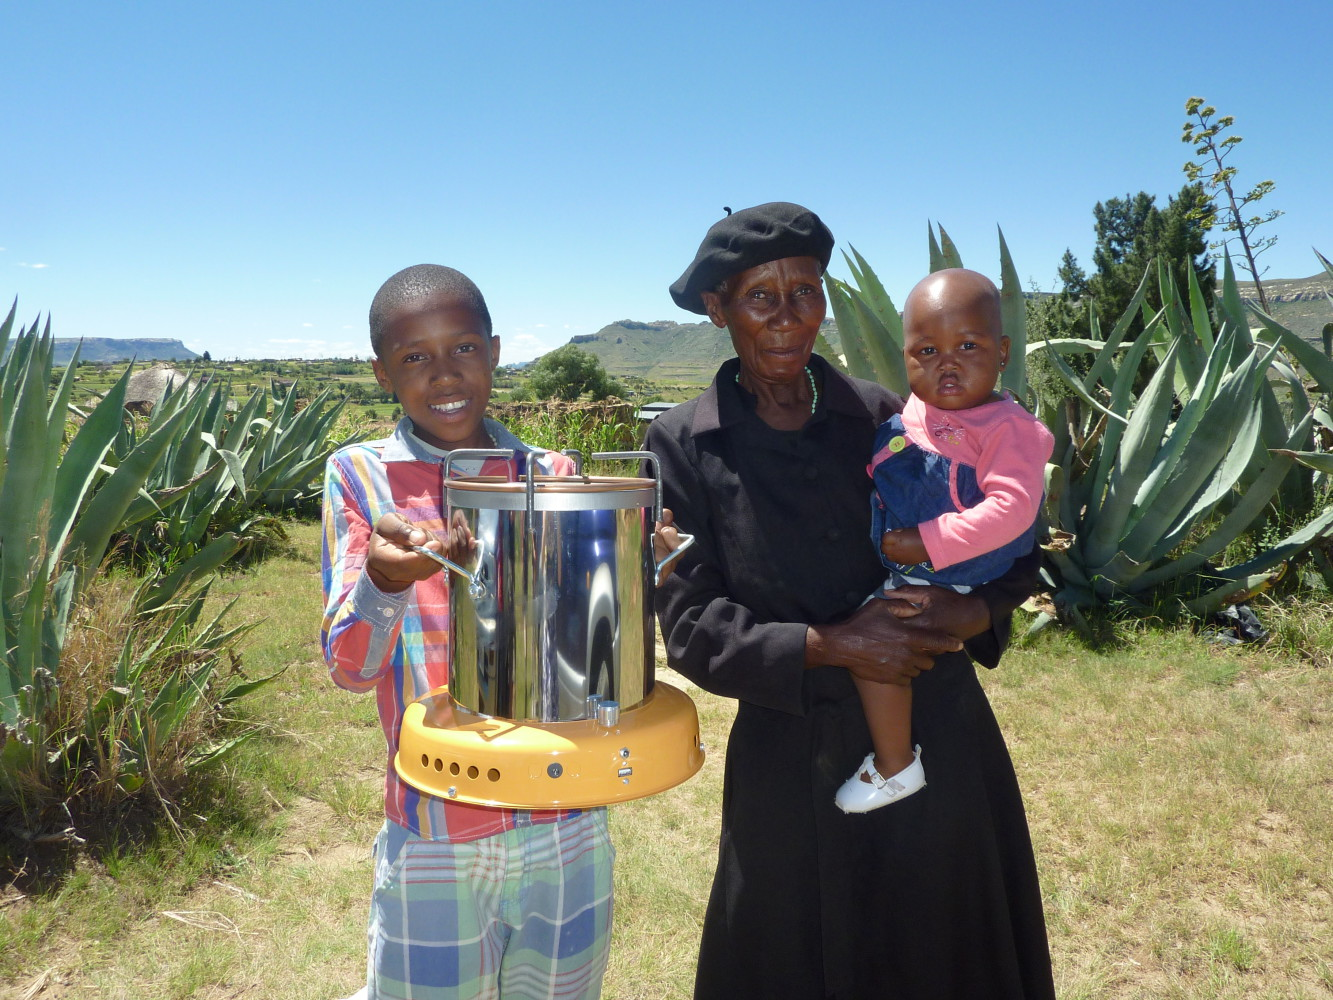 M'e Mateboho, from Haramabele, takes care of 4 grandchildren. Here with her adorable baby granddaughter and charming grandson. Her stove was donated by Annemiek Piscaer.